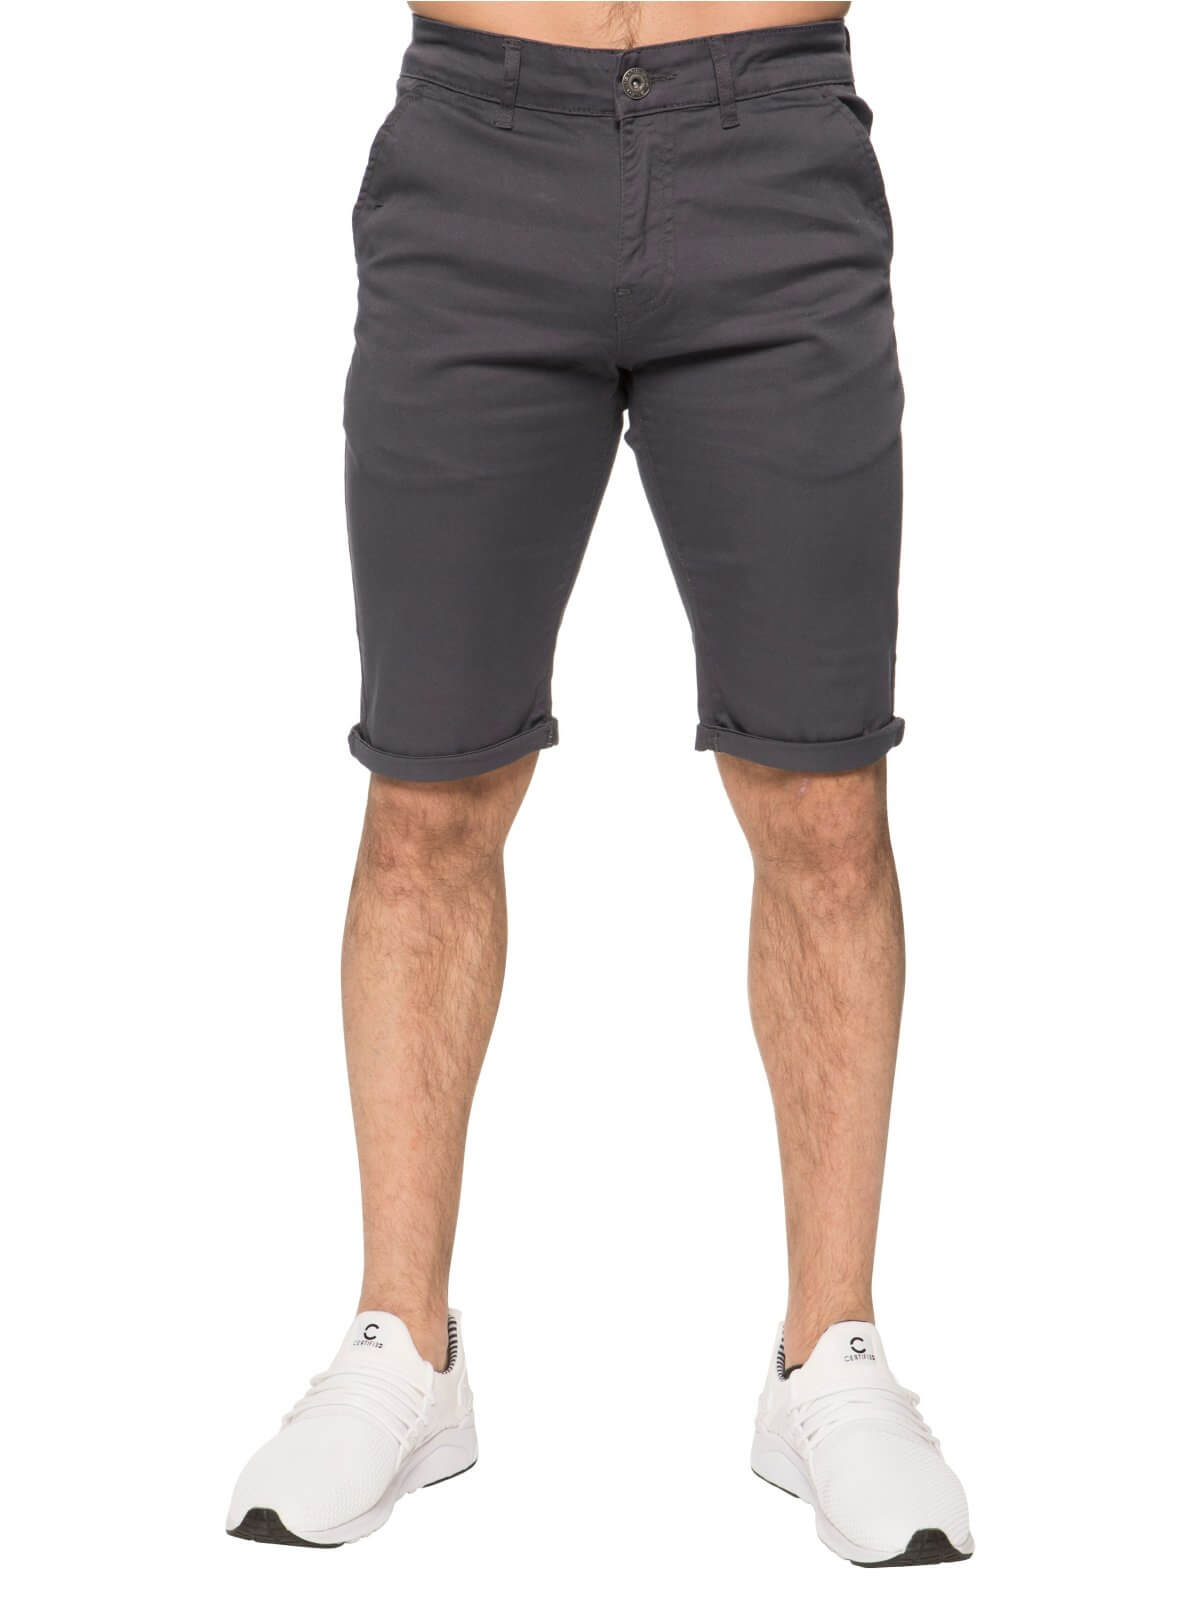 Mens Grey Casual Chino Shorts | Enzo Designer Menswear